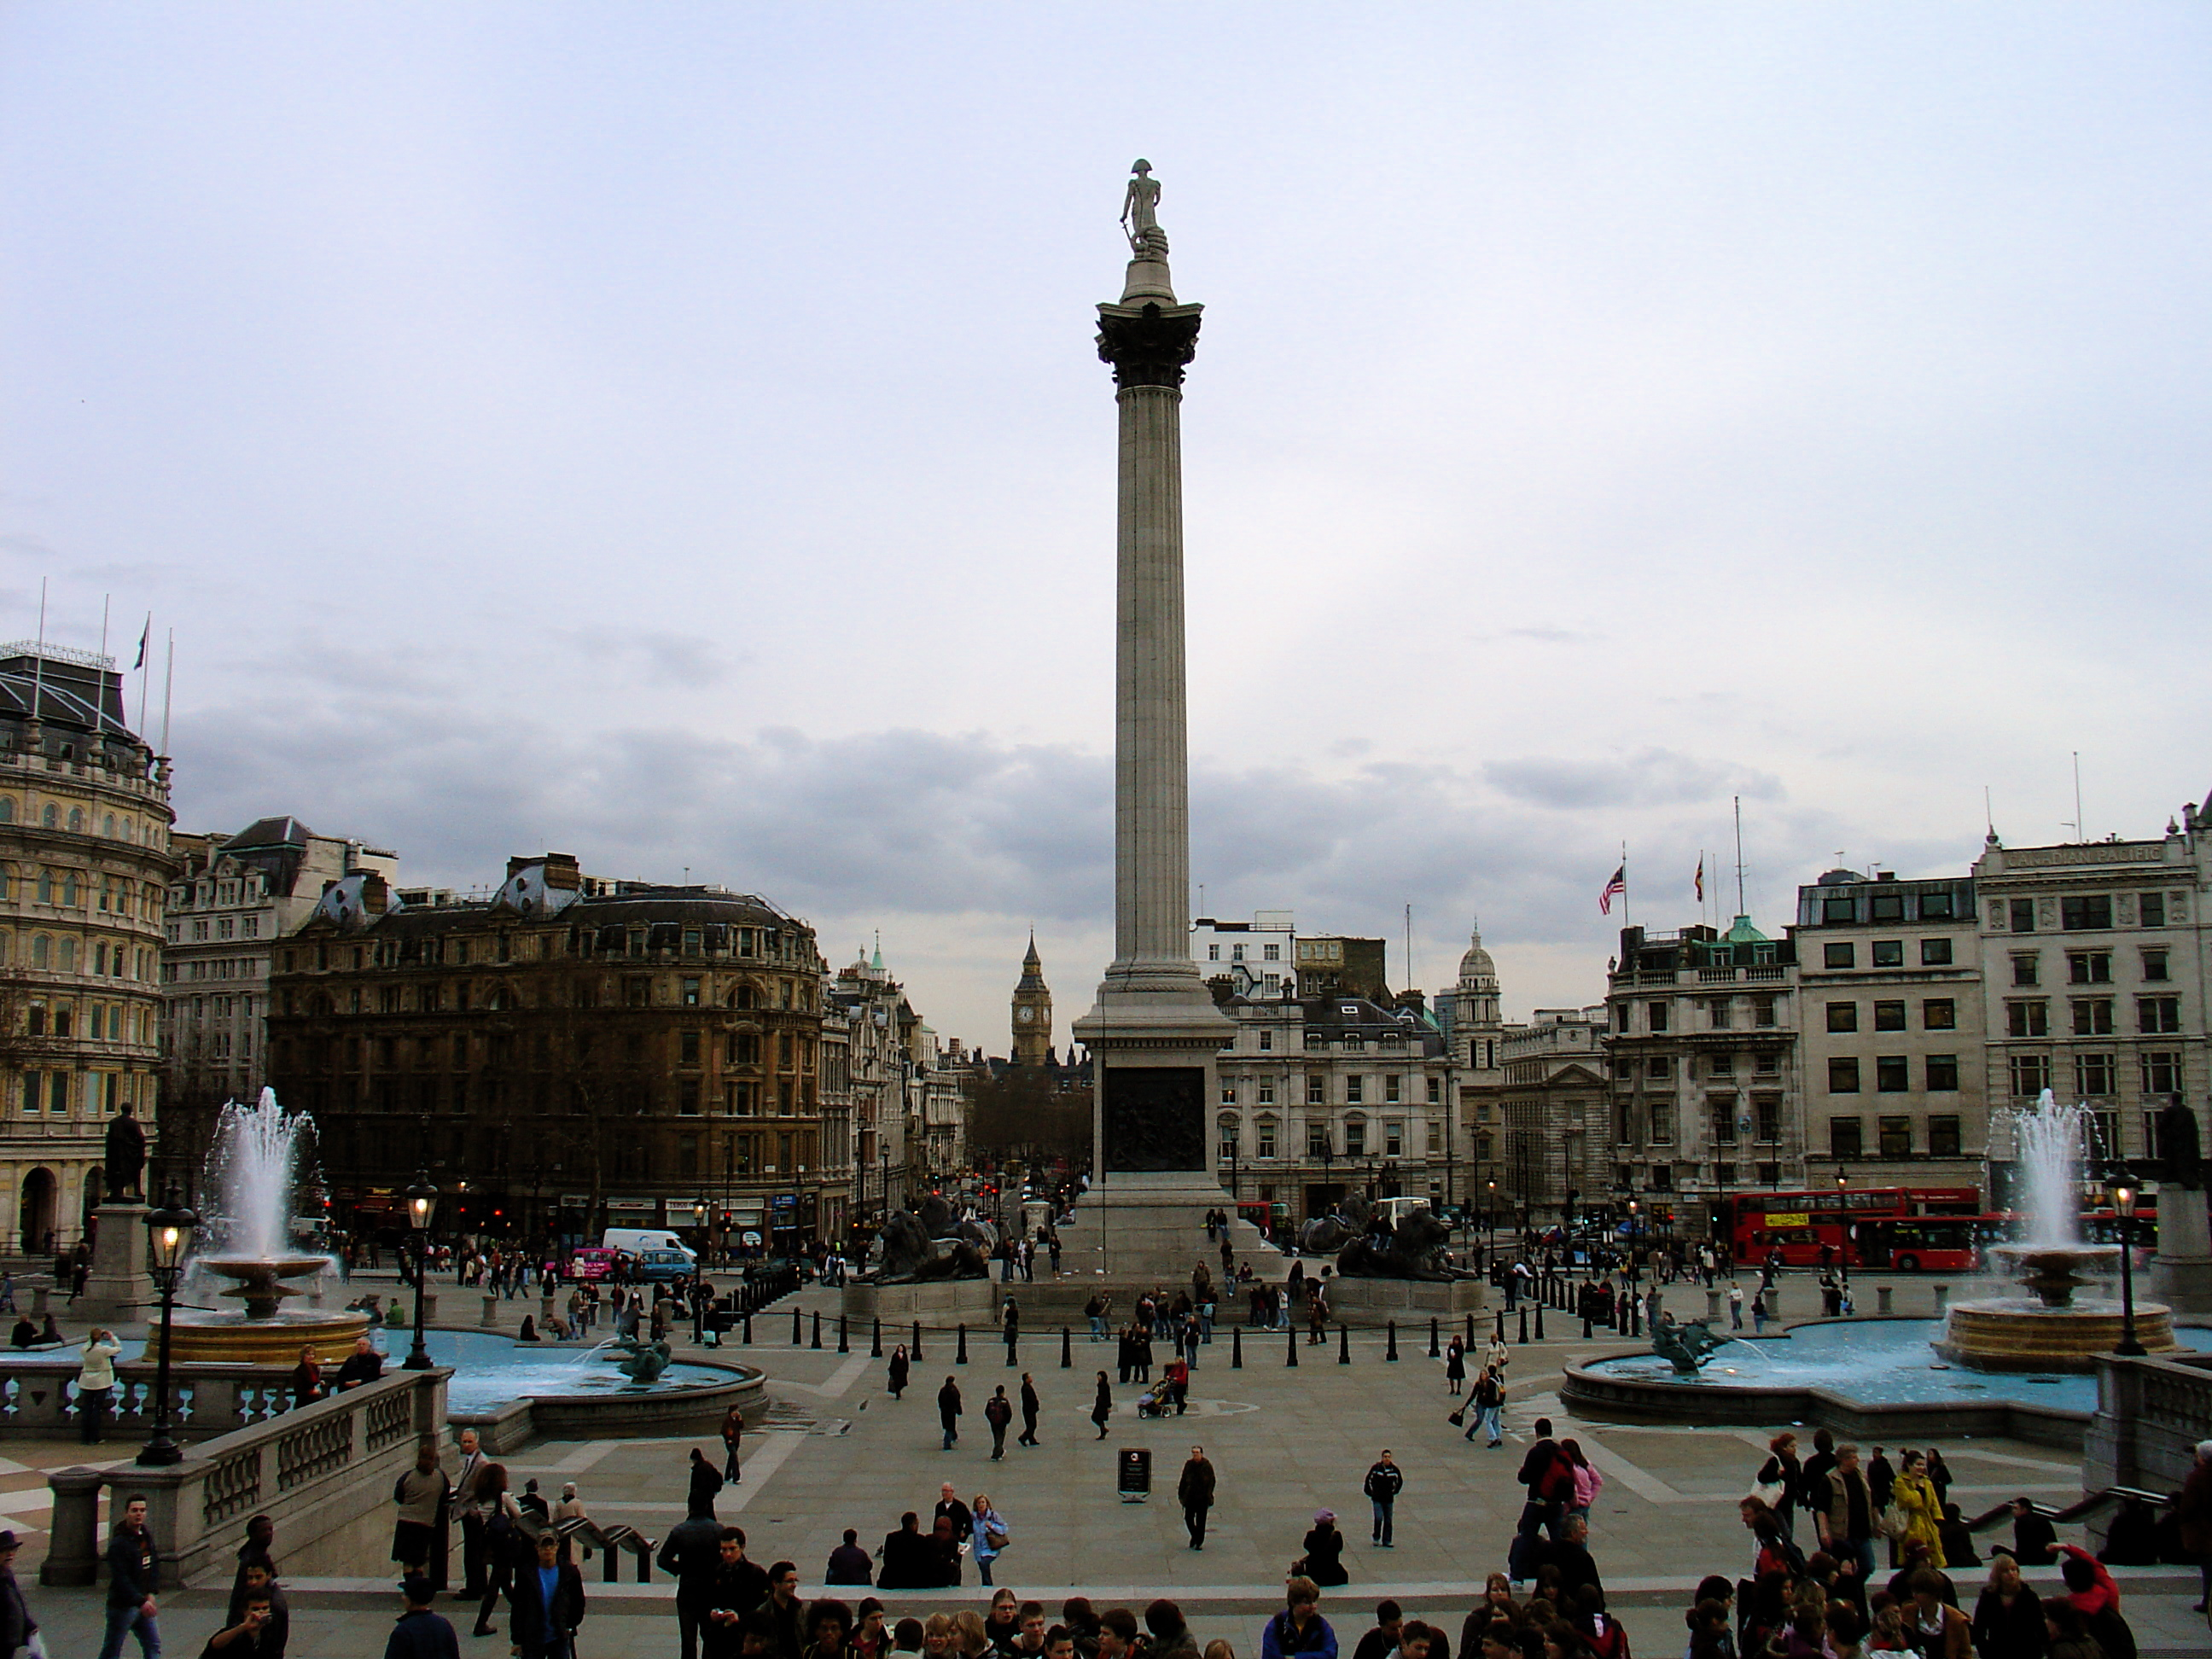 Exploring London: 10 Random Facts and Figures about